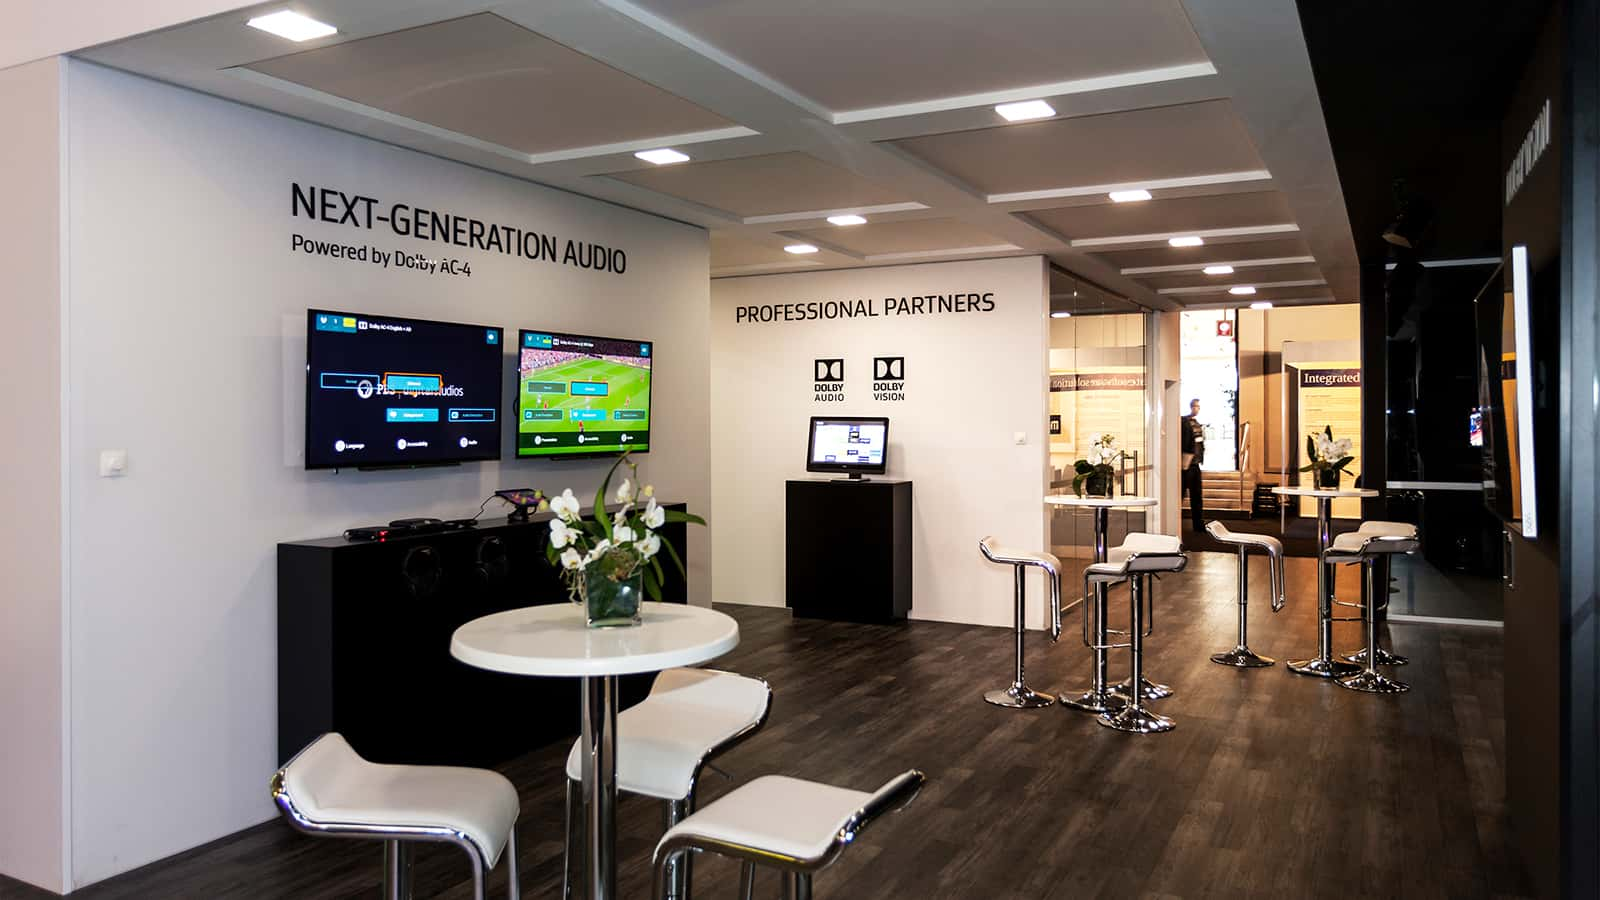 Informal meeting area at Dolby IBC Amsterdam 2015 experience.